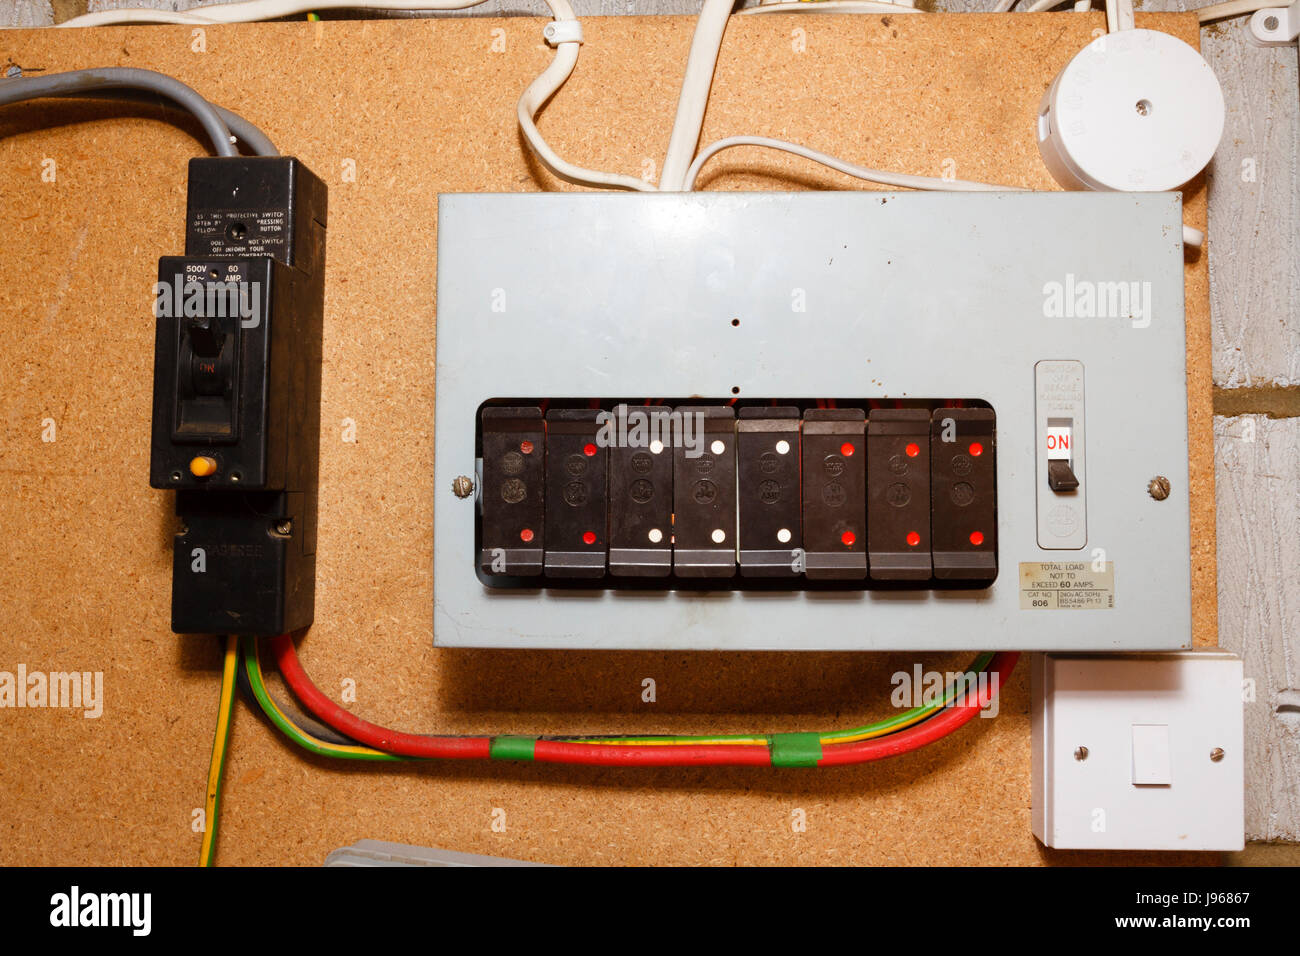 domestic fuse box stock photos domestic fuse box stock images alamy rh alamy com